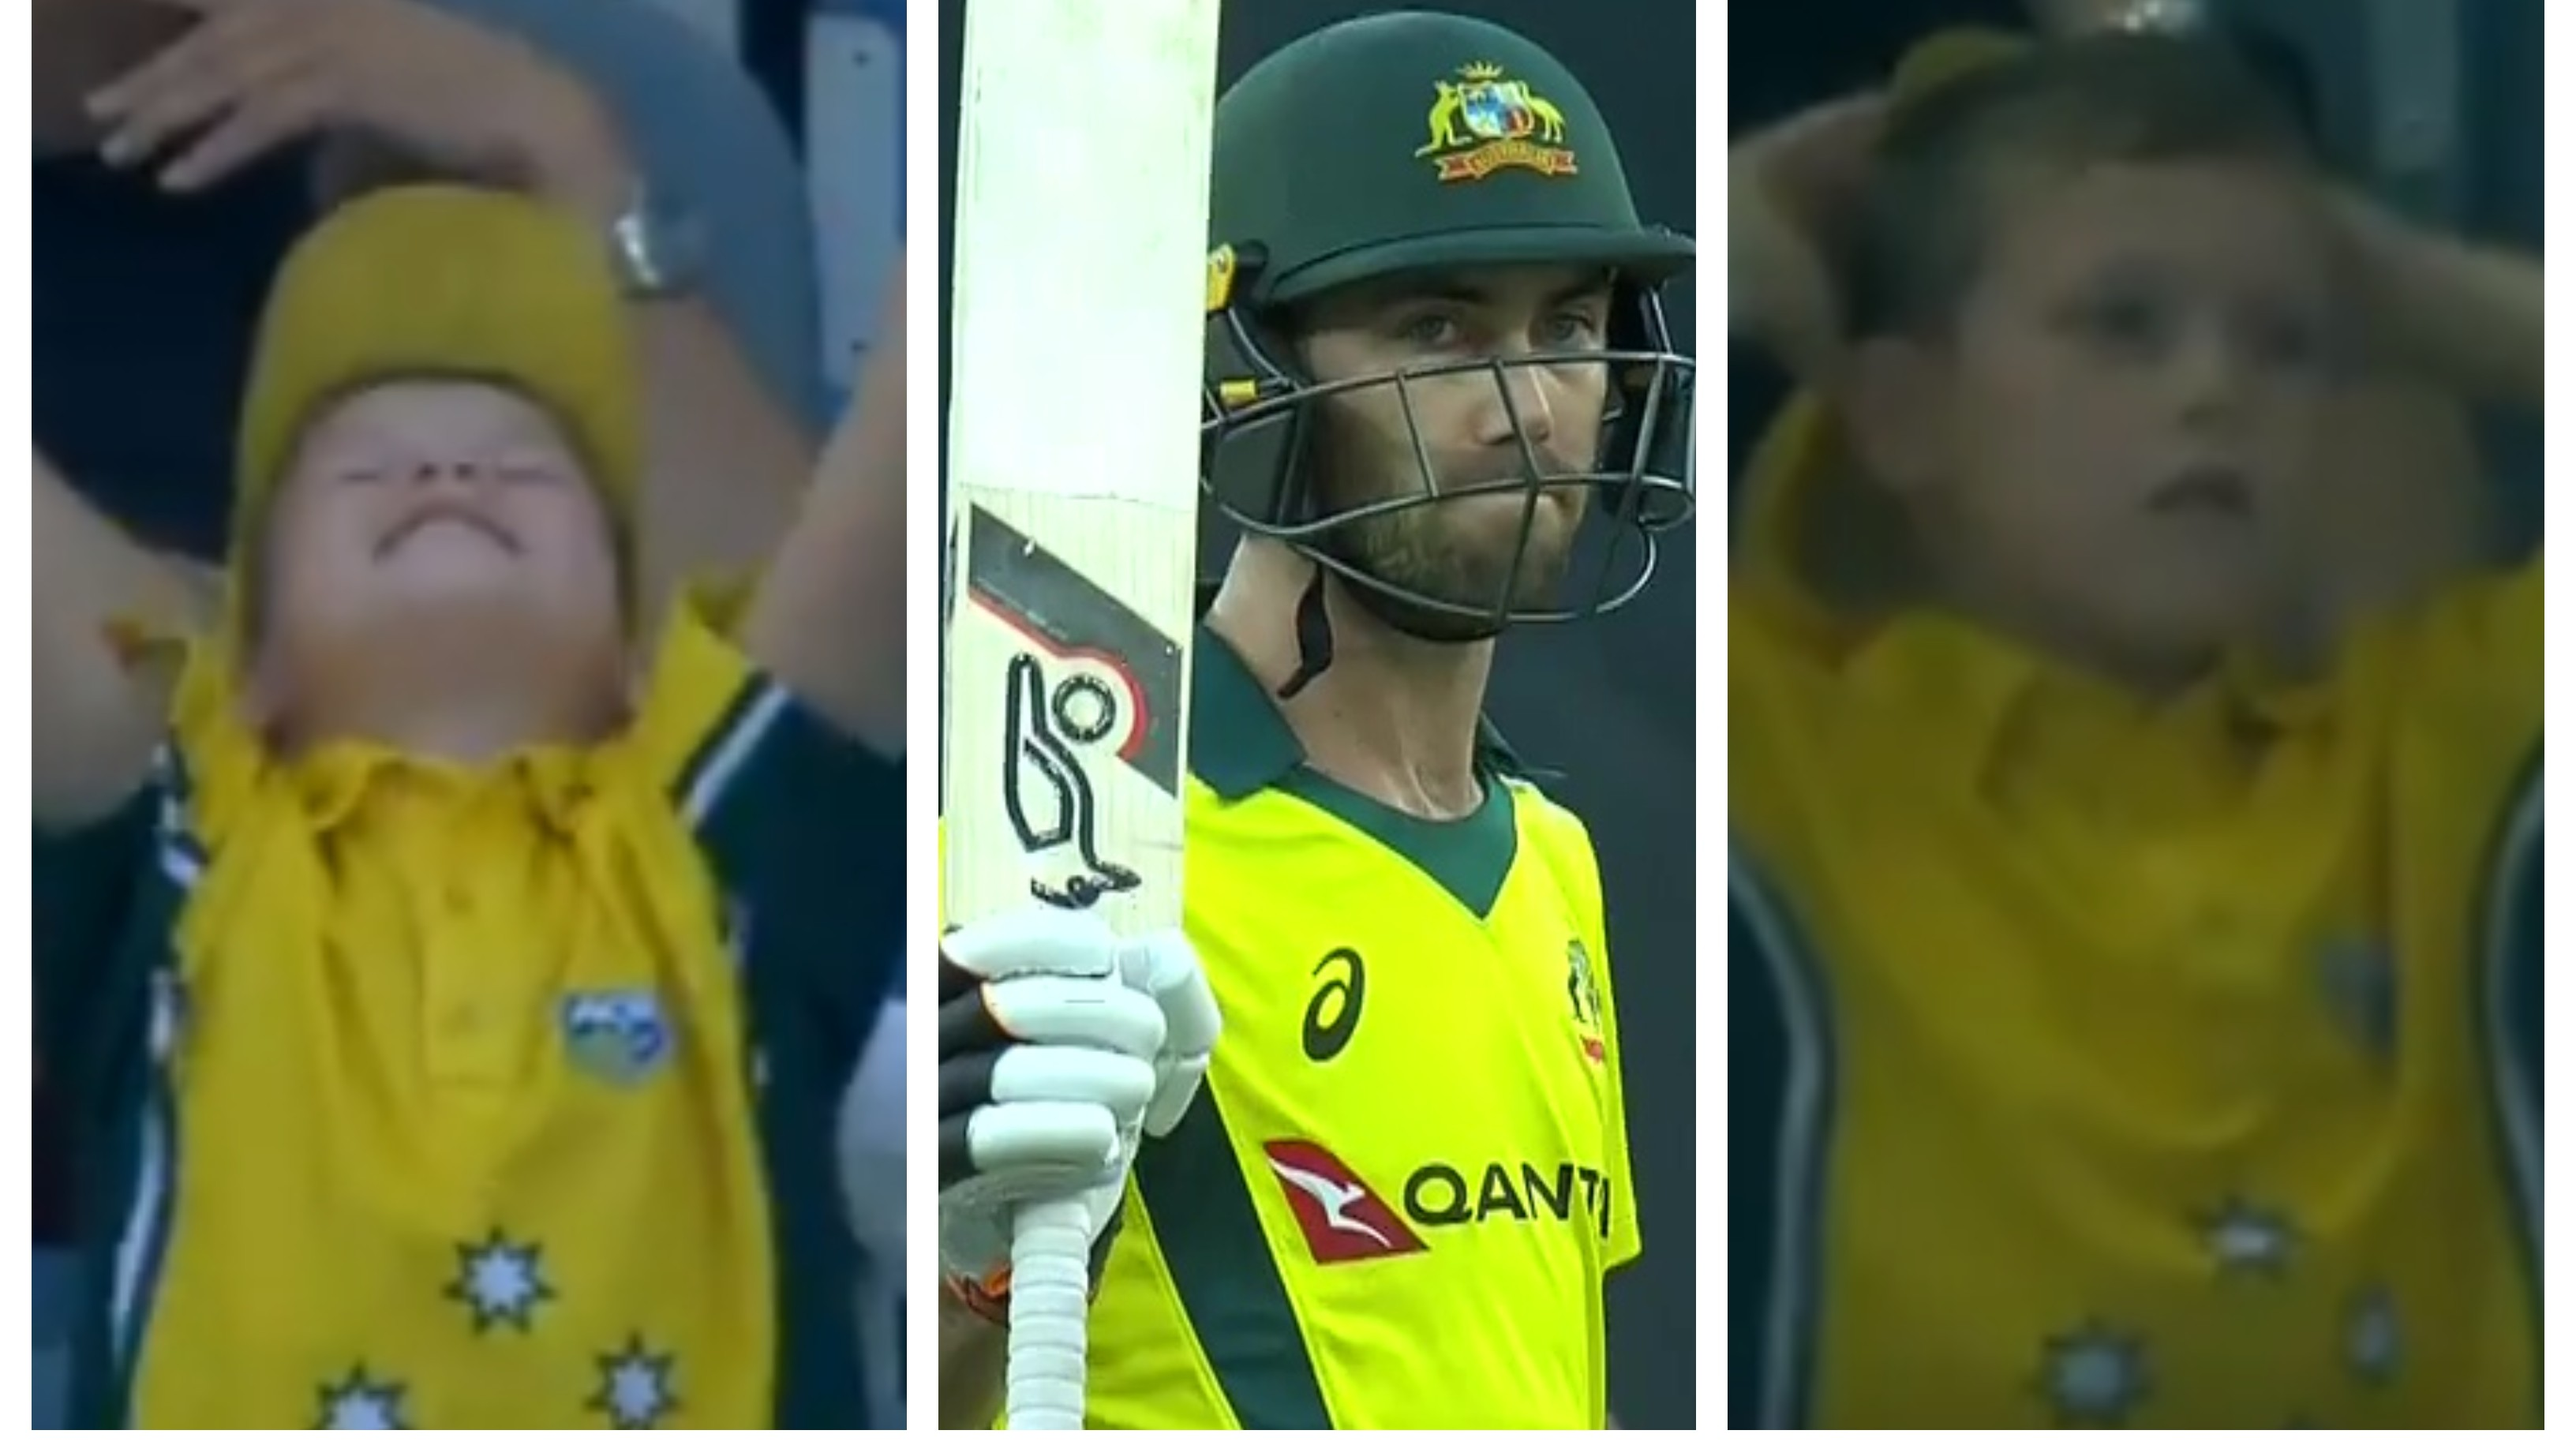 PAK v AUS 2019: WATCH – A little Australian fan shows different emotions during Maxwell's innings in the 4th ODI